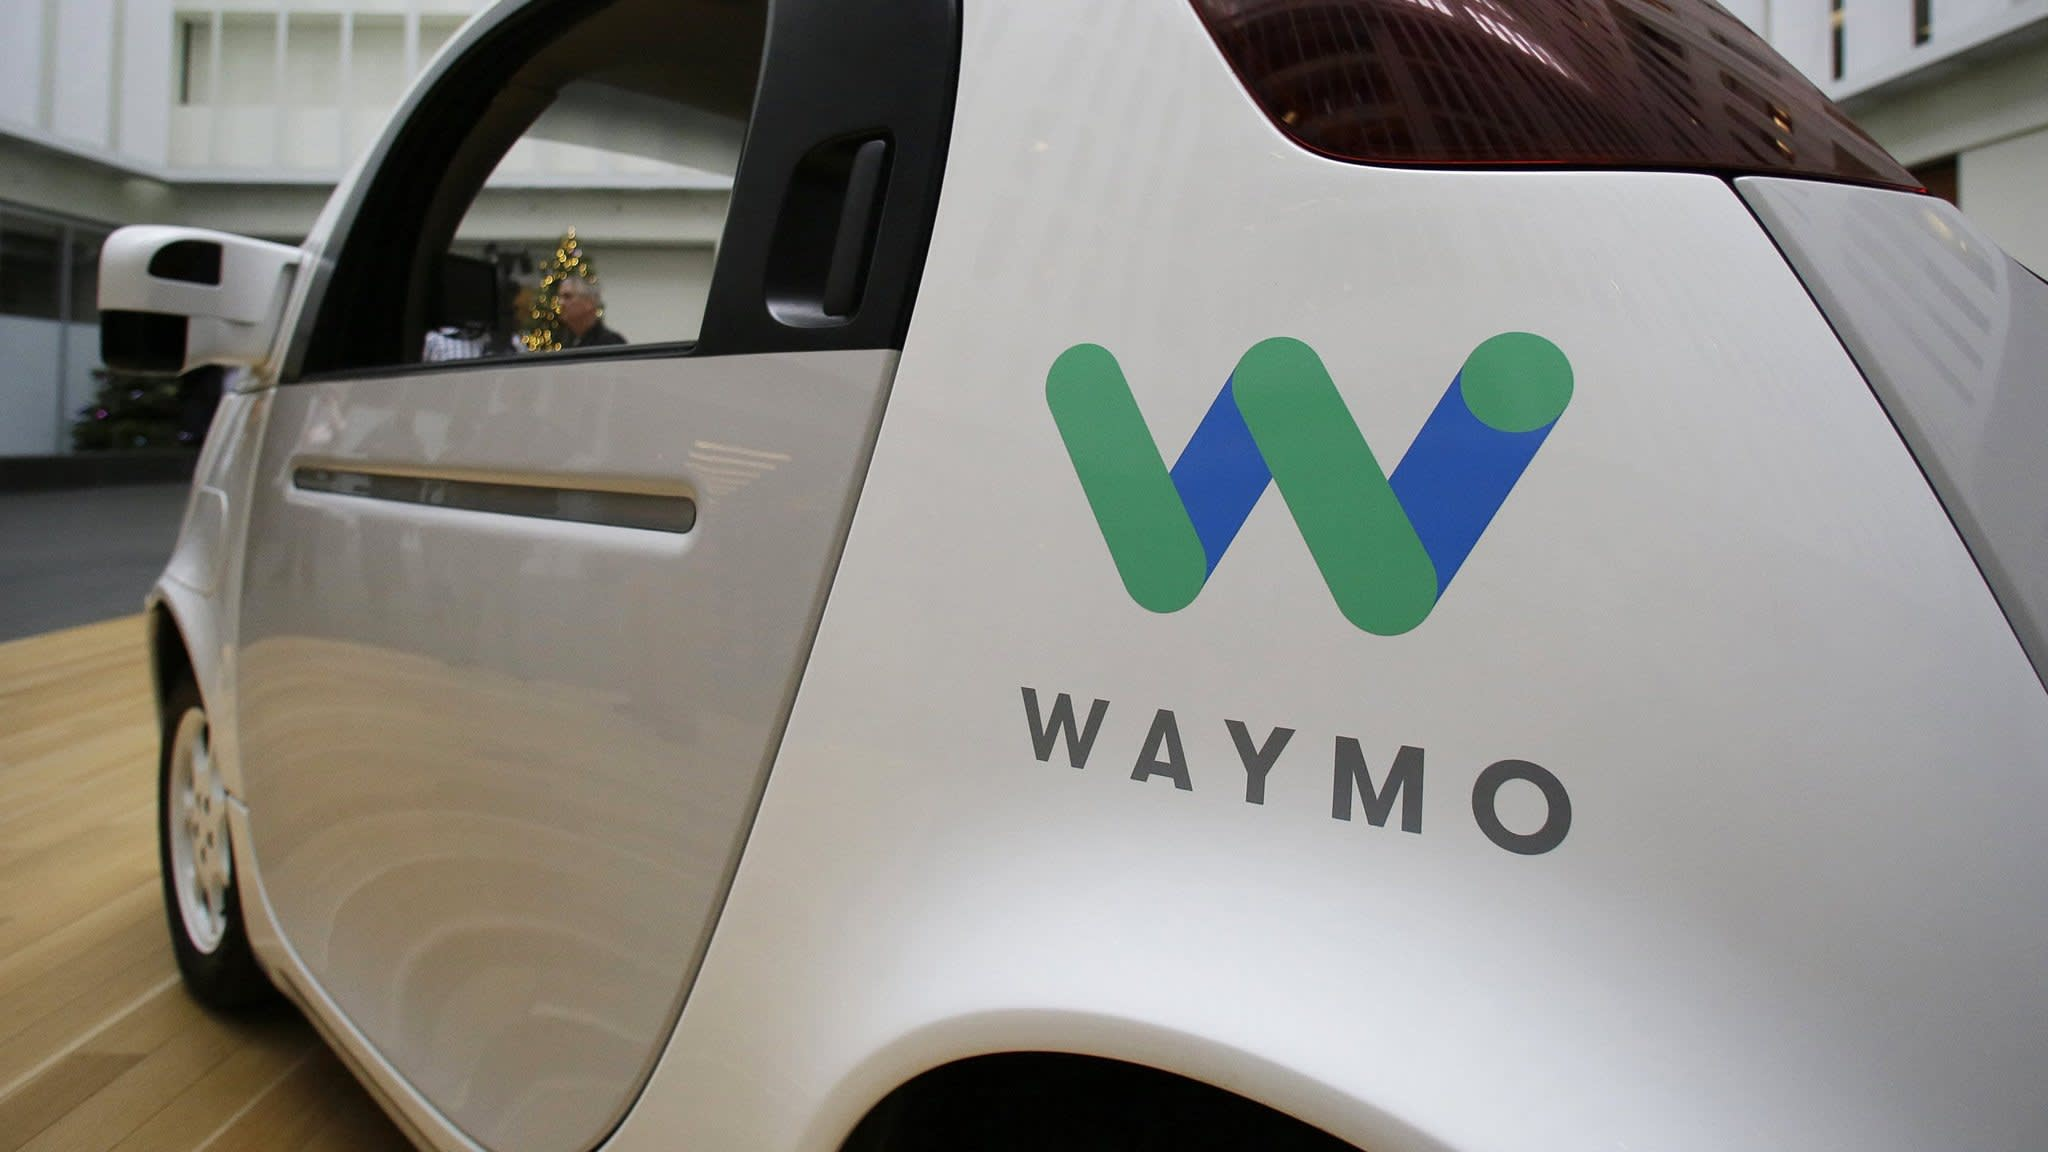 Start of Waymo-Uber trial highlights vicious competition